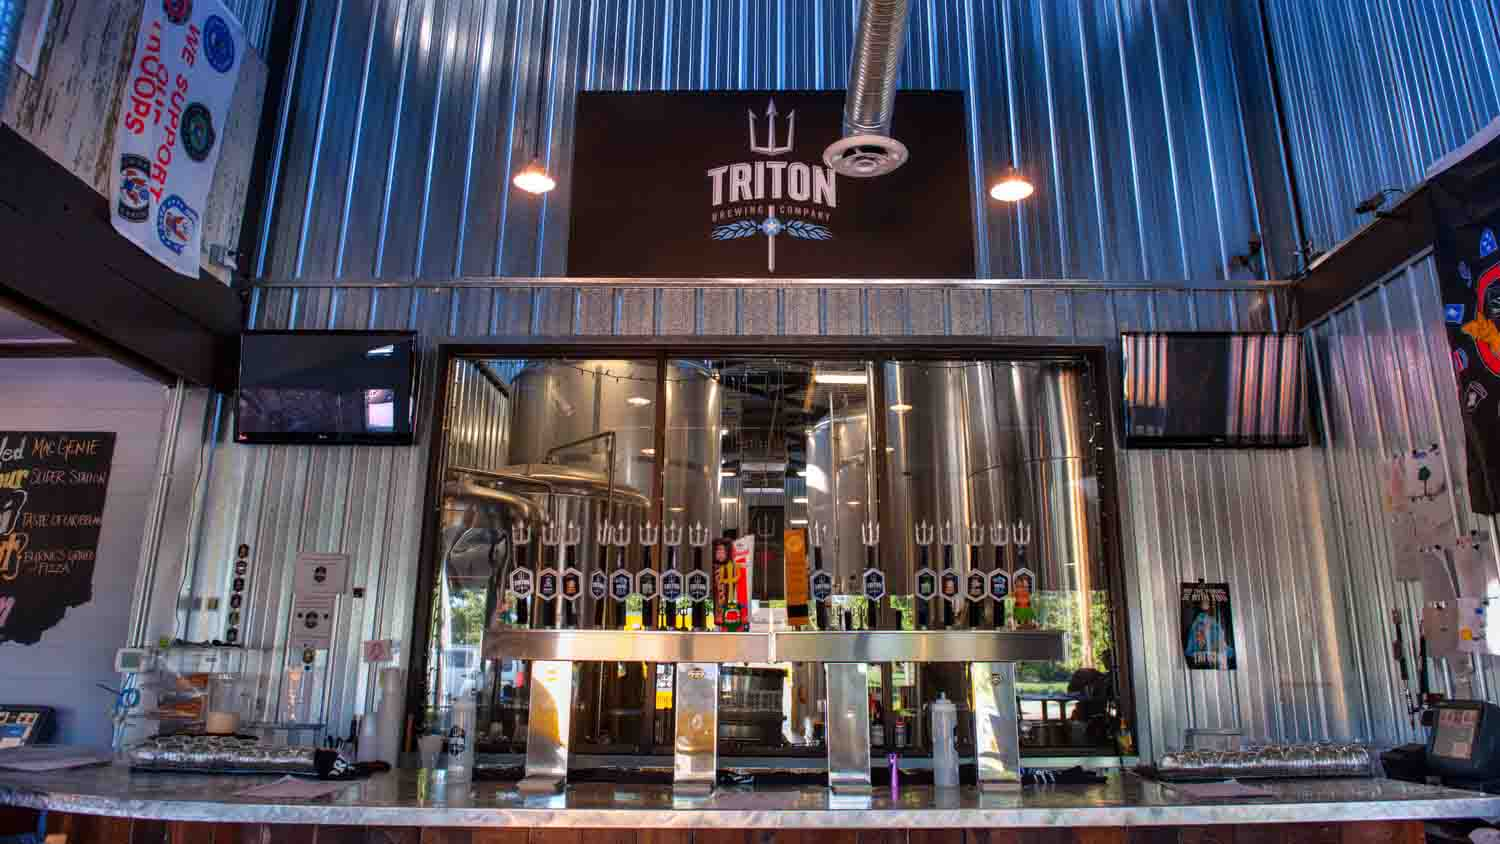 Triton Brewing Company 2